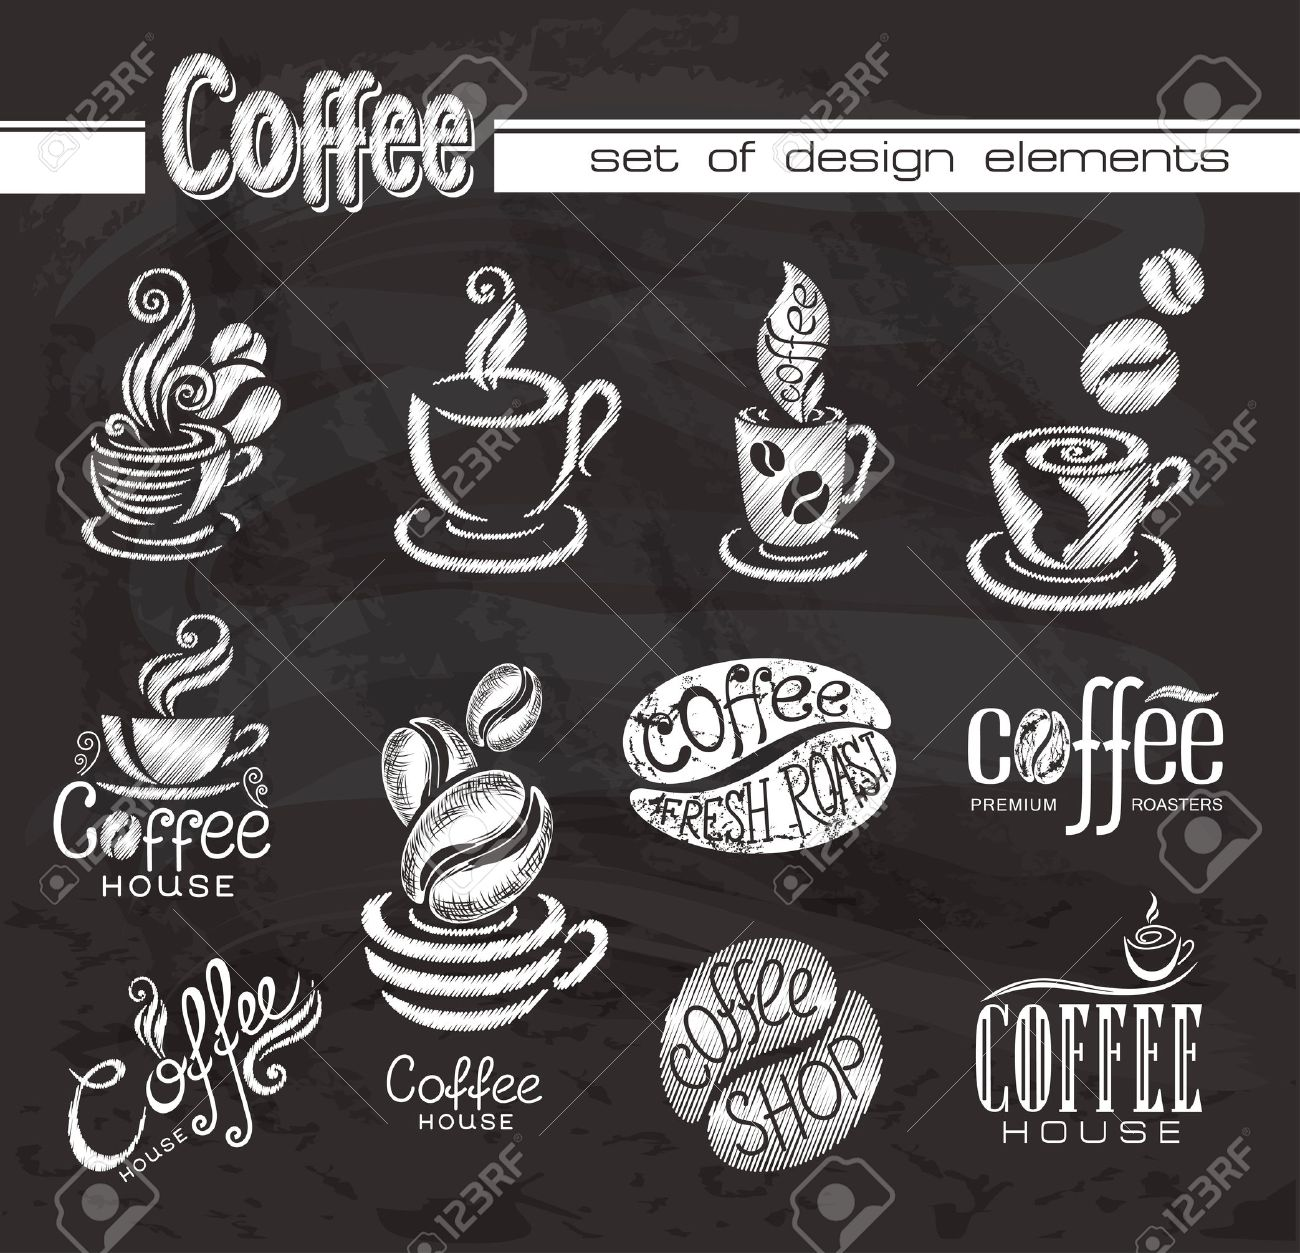 coffee design elements on the chalkboard royalty free cliparts